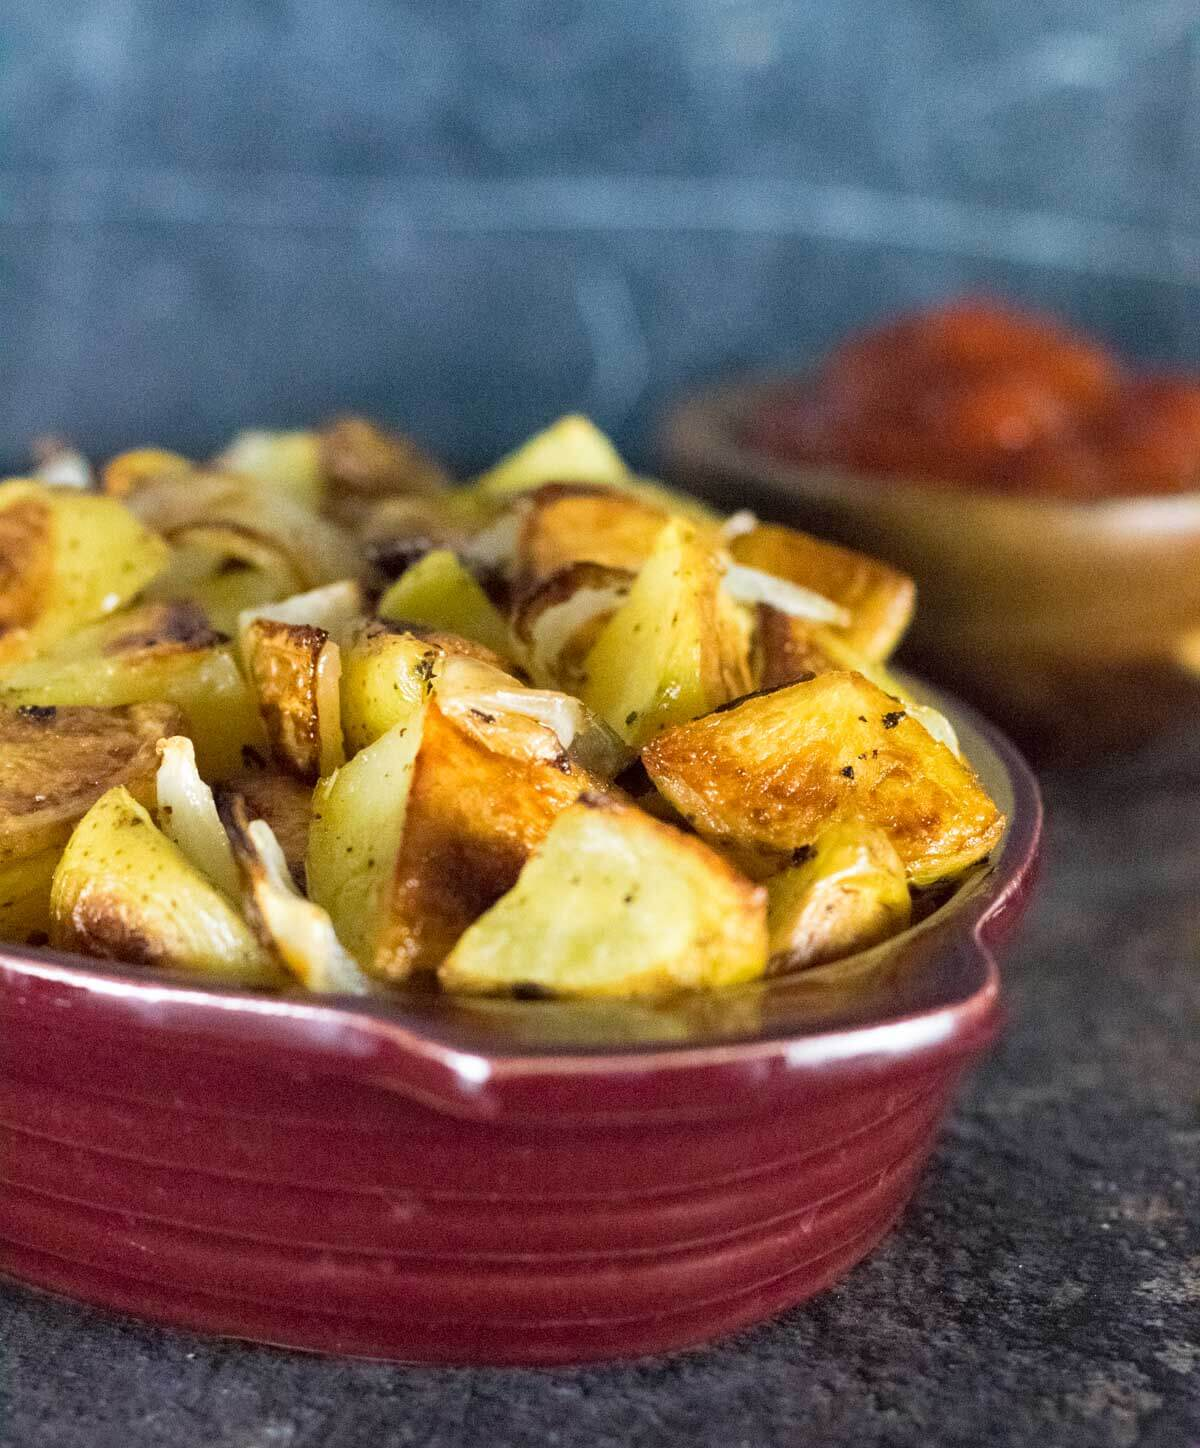 Roasted potatoes and onion in red bowl.